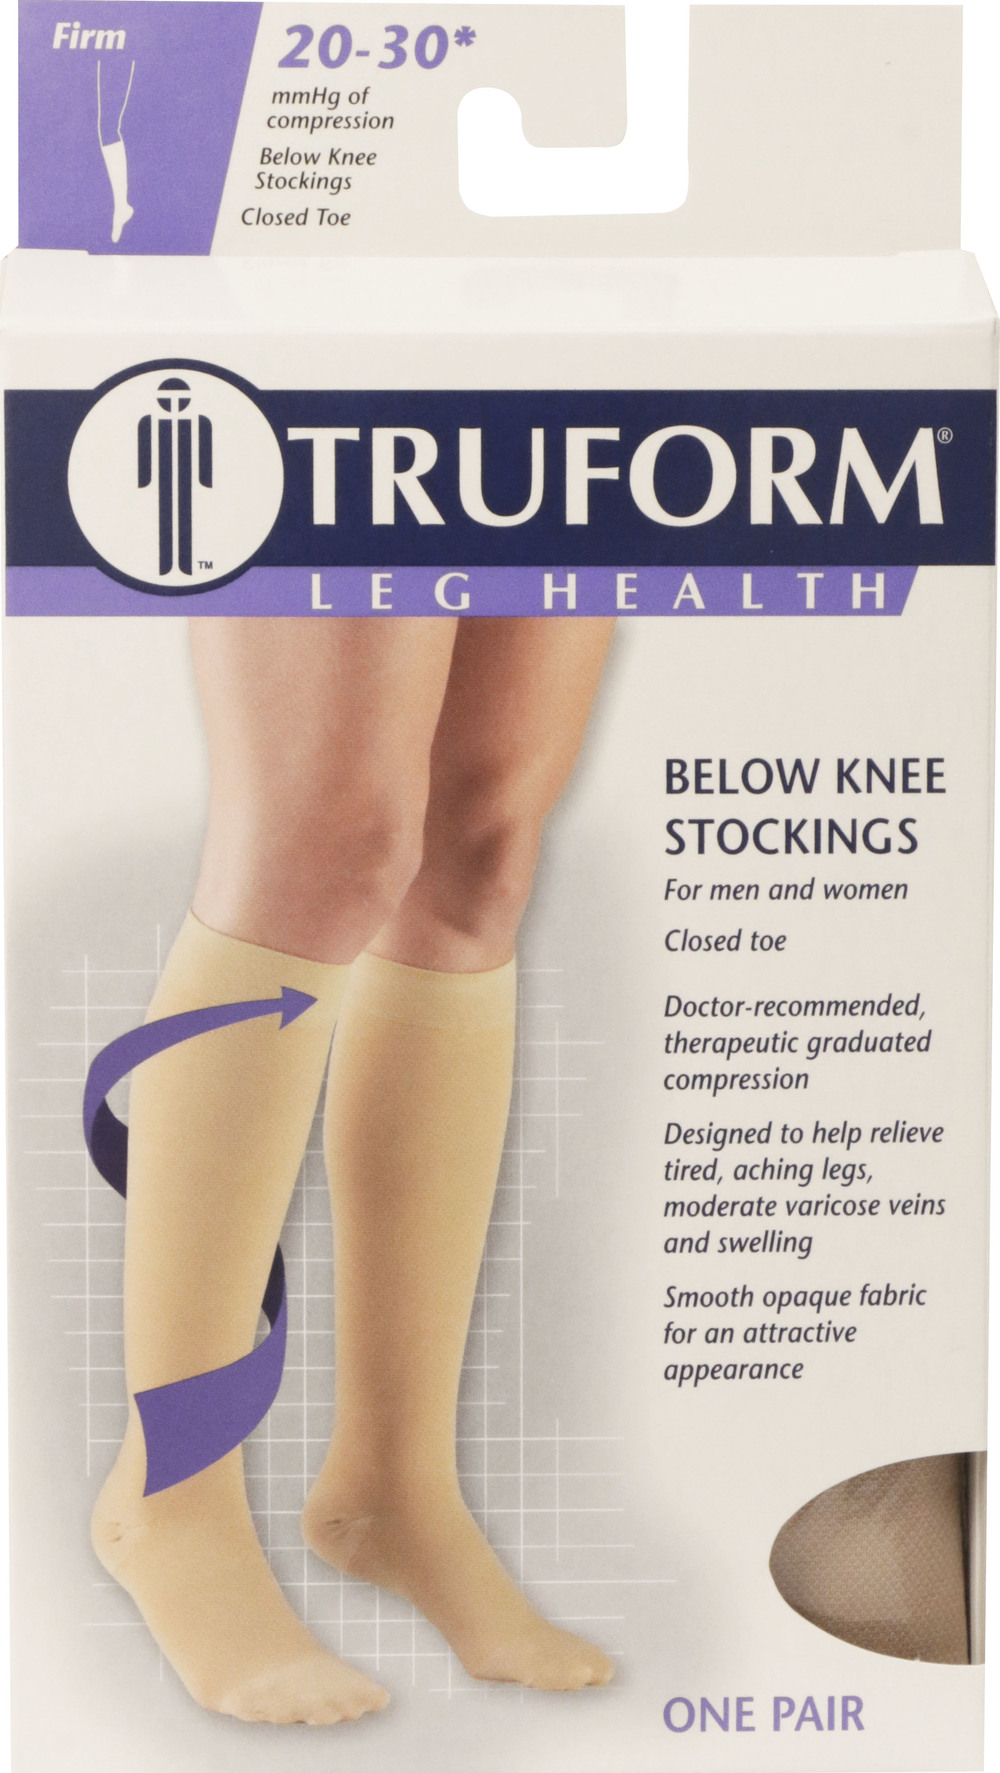 Truform, 8865, 20-30 mmHg, Soft Top, Closed Toe, Knee High, Stockings, Package